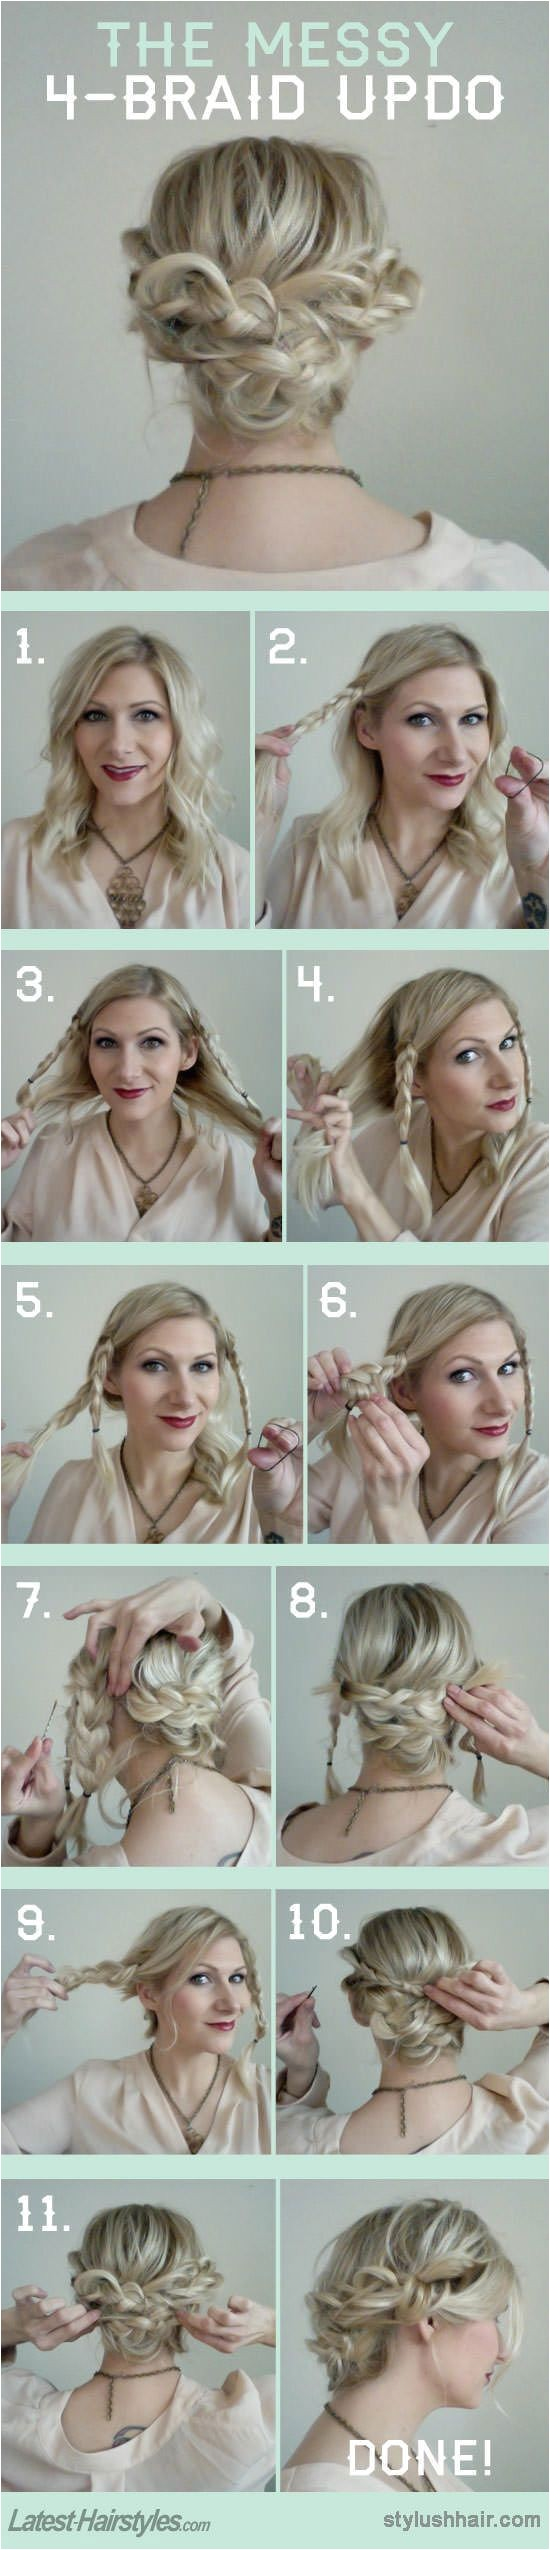 Cute Easy to Do Hairstyles for Medium Length Hair 15 Fresh Updo's for Medium Length Hair Popular Haircuts